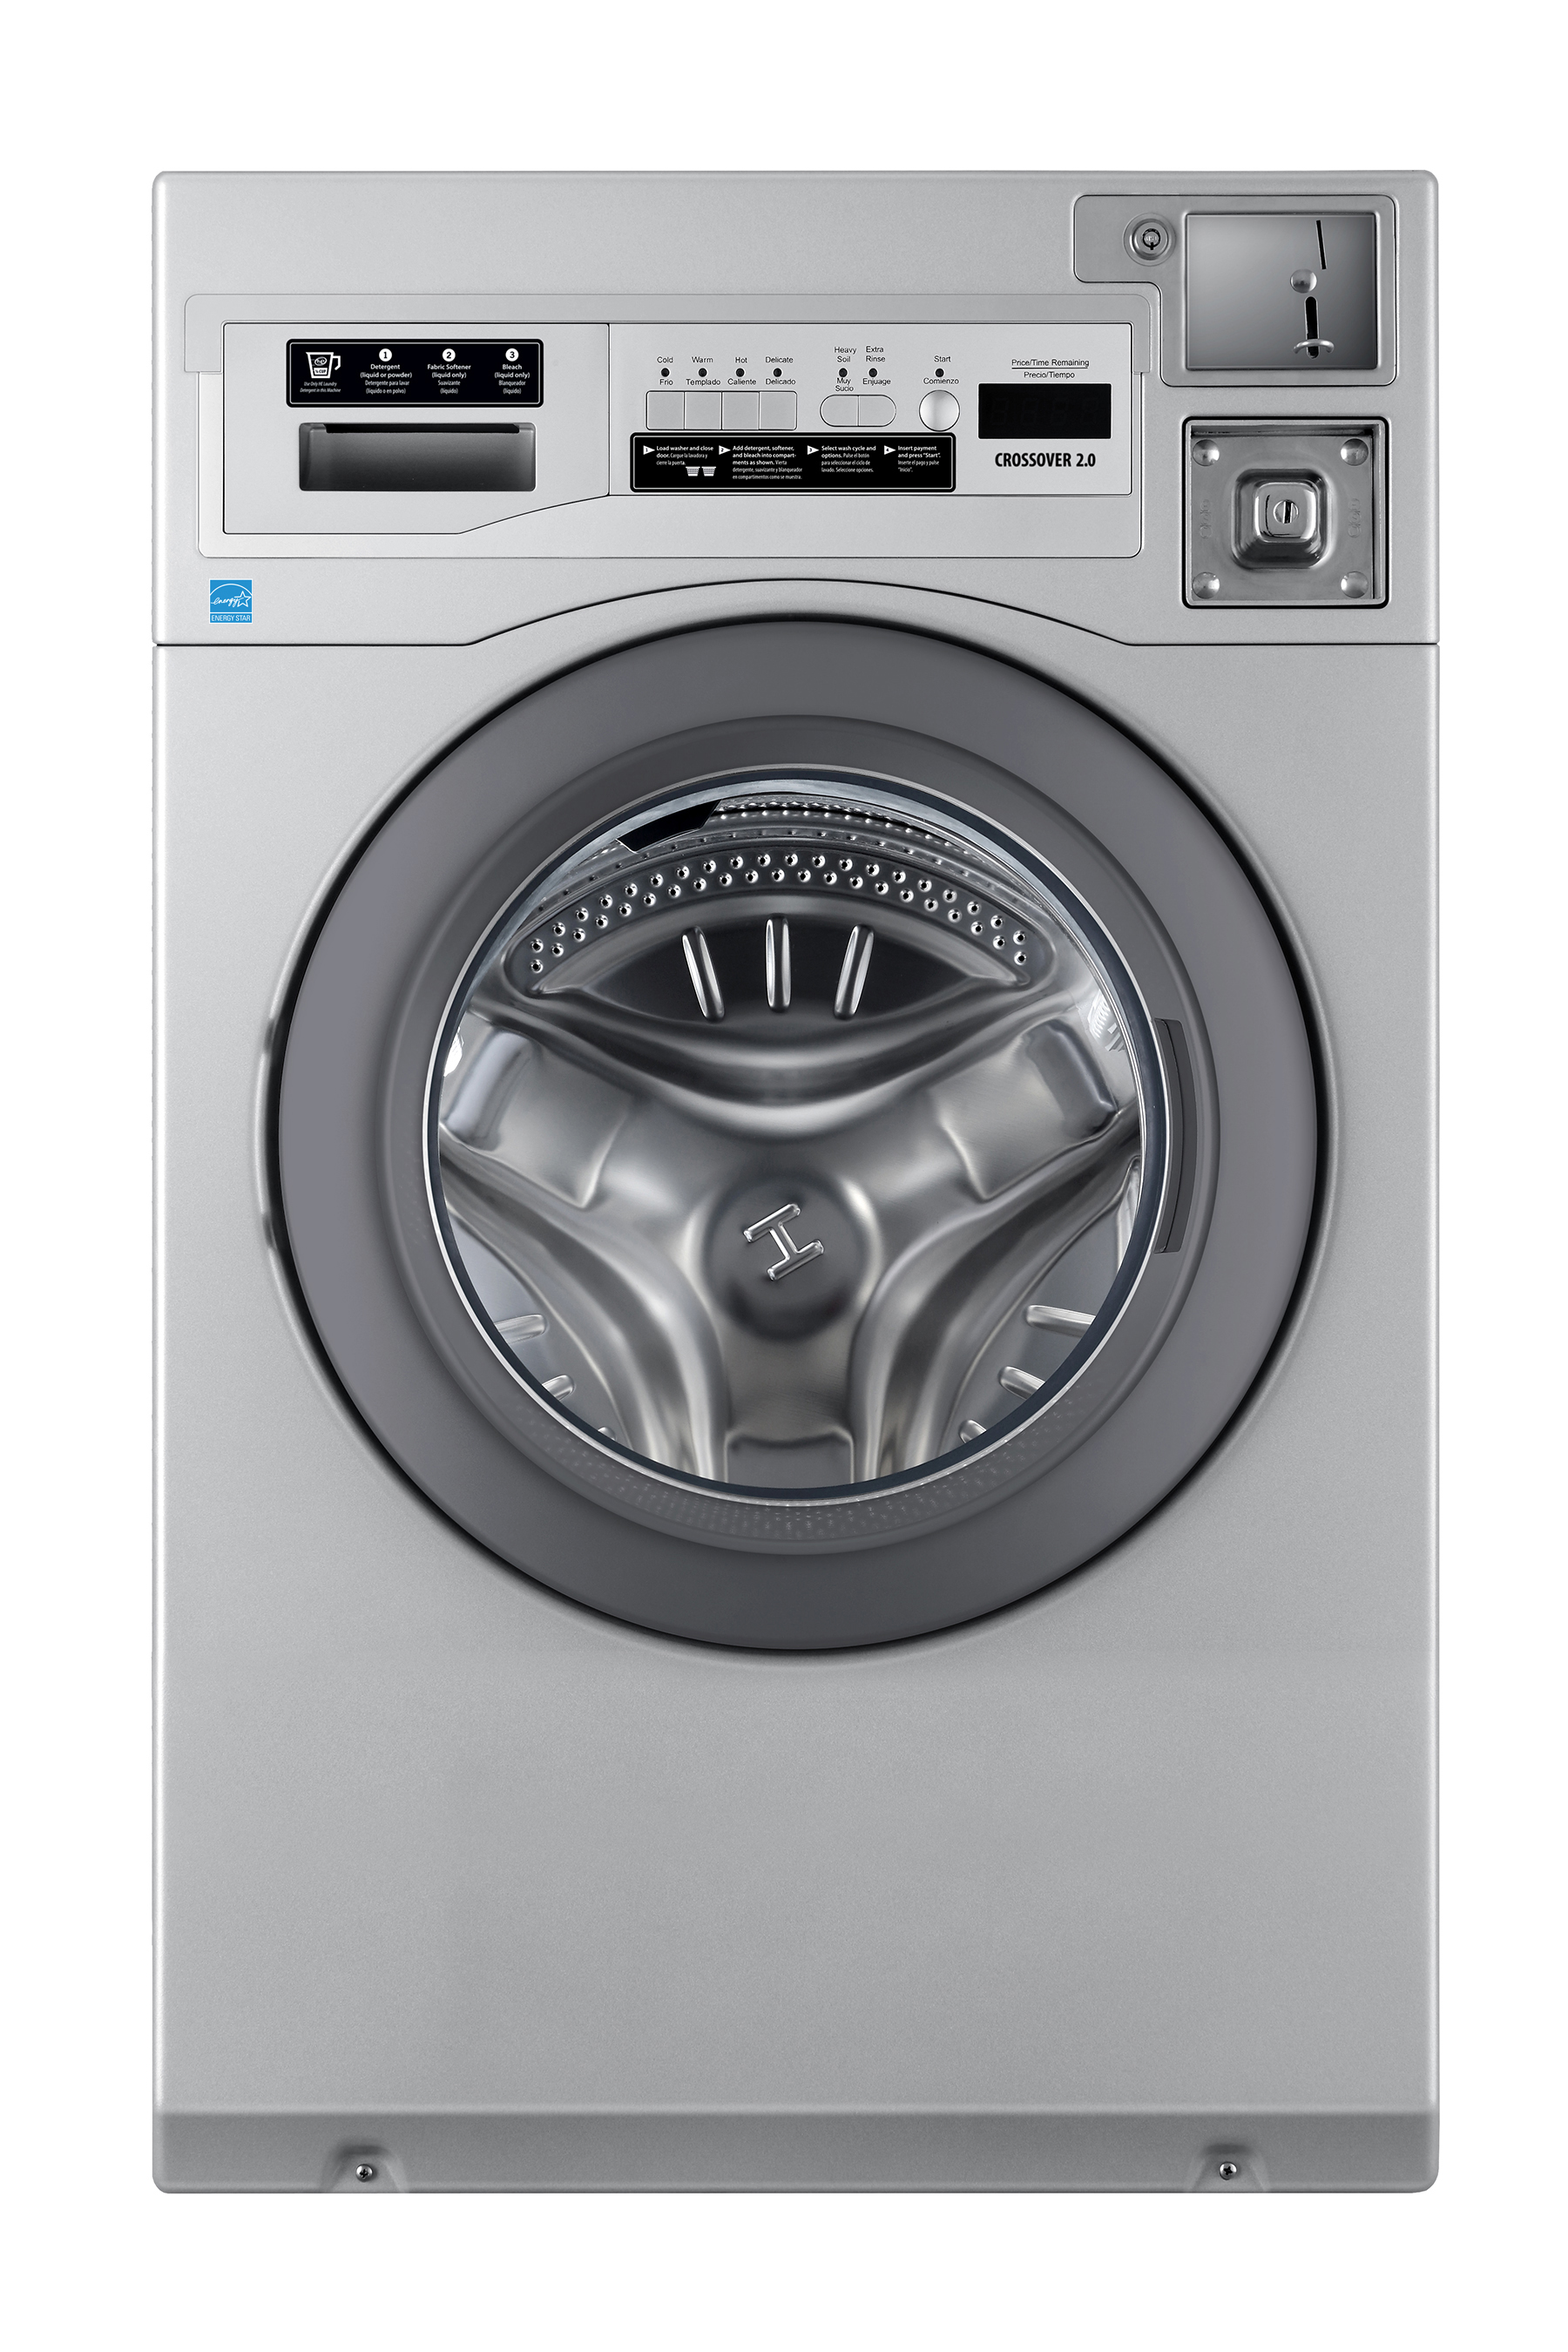 Crossover Laundry Crossover True Commercial Laundry - 3.5 CF Front Load Washer, Coin Option Included/Card Ready, Silver, 27""